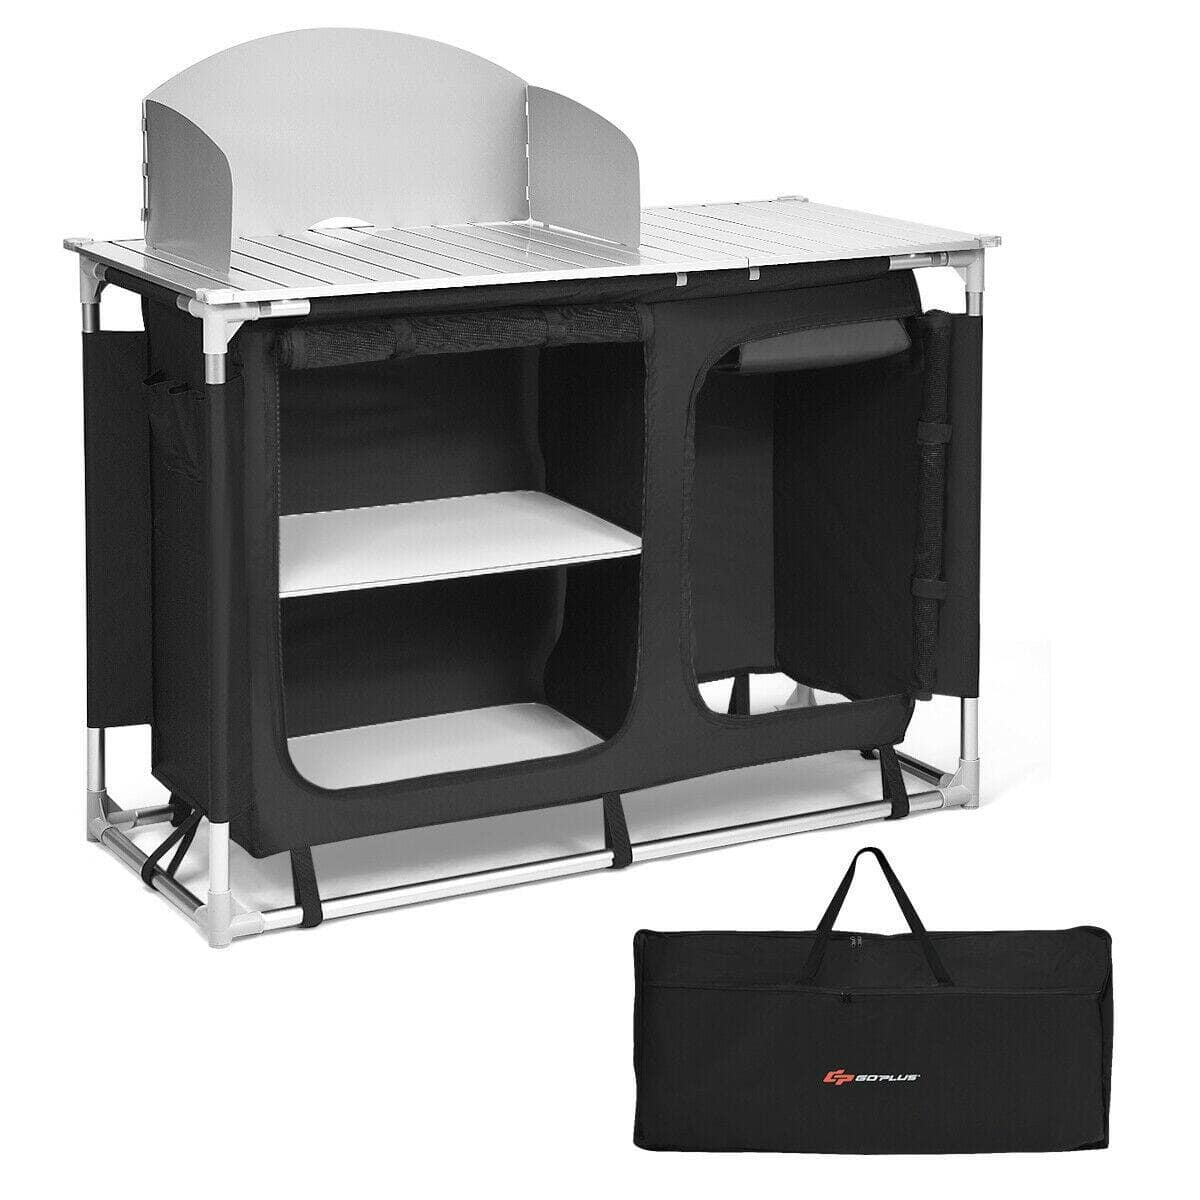 Costway Portable Camp Kitchen and Sink Table - $95.95 + Free Shipping